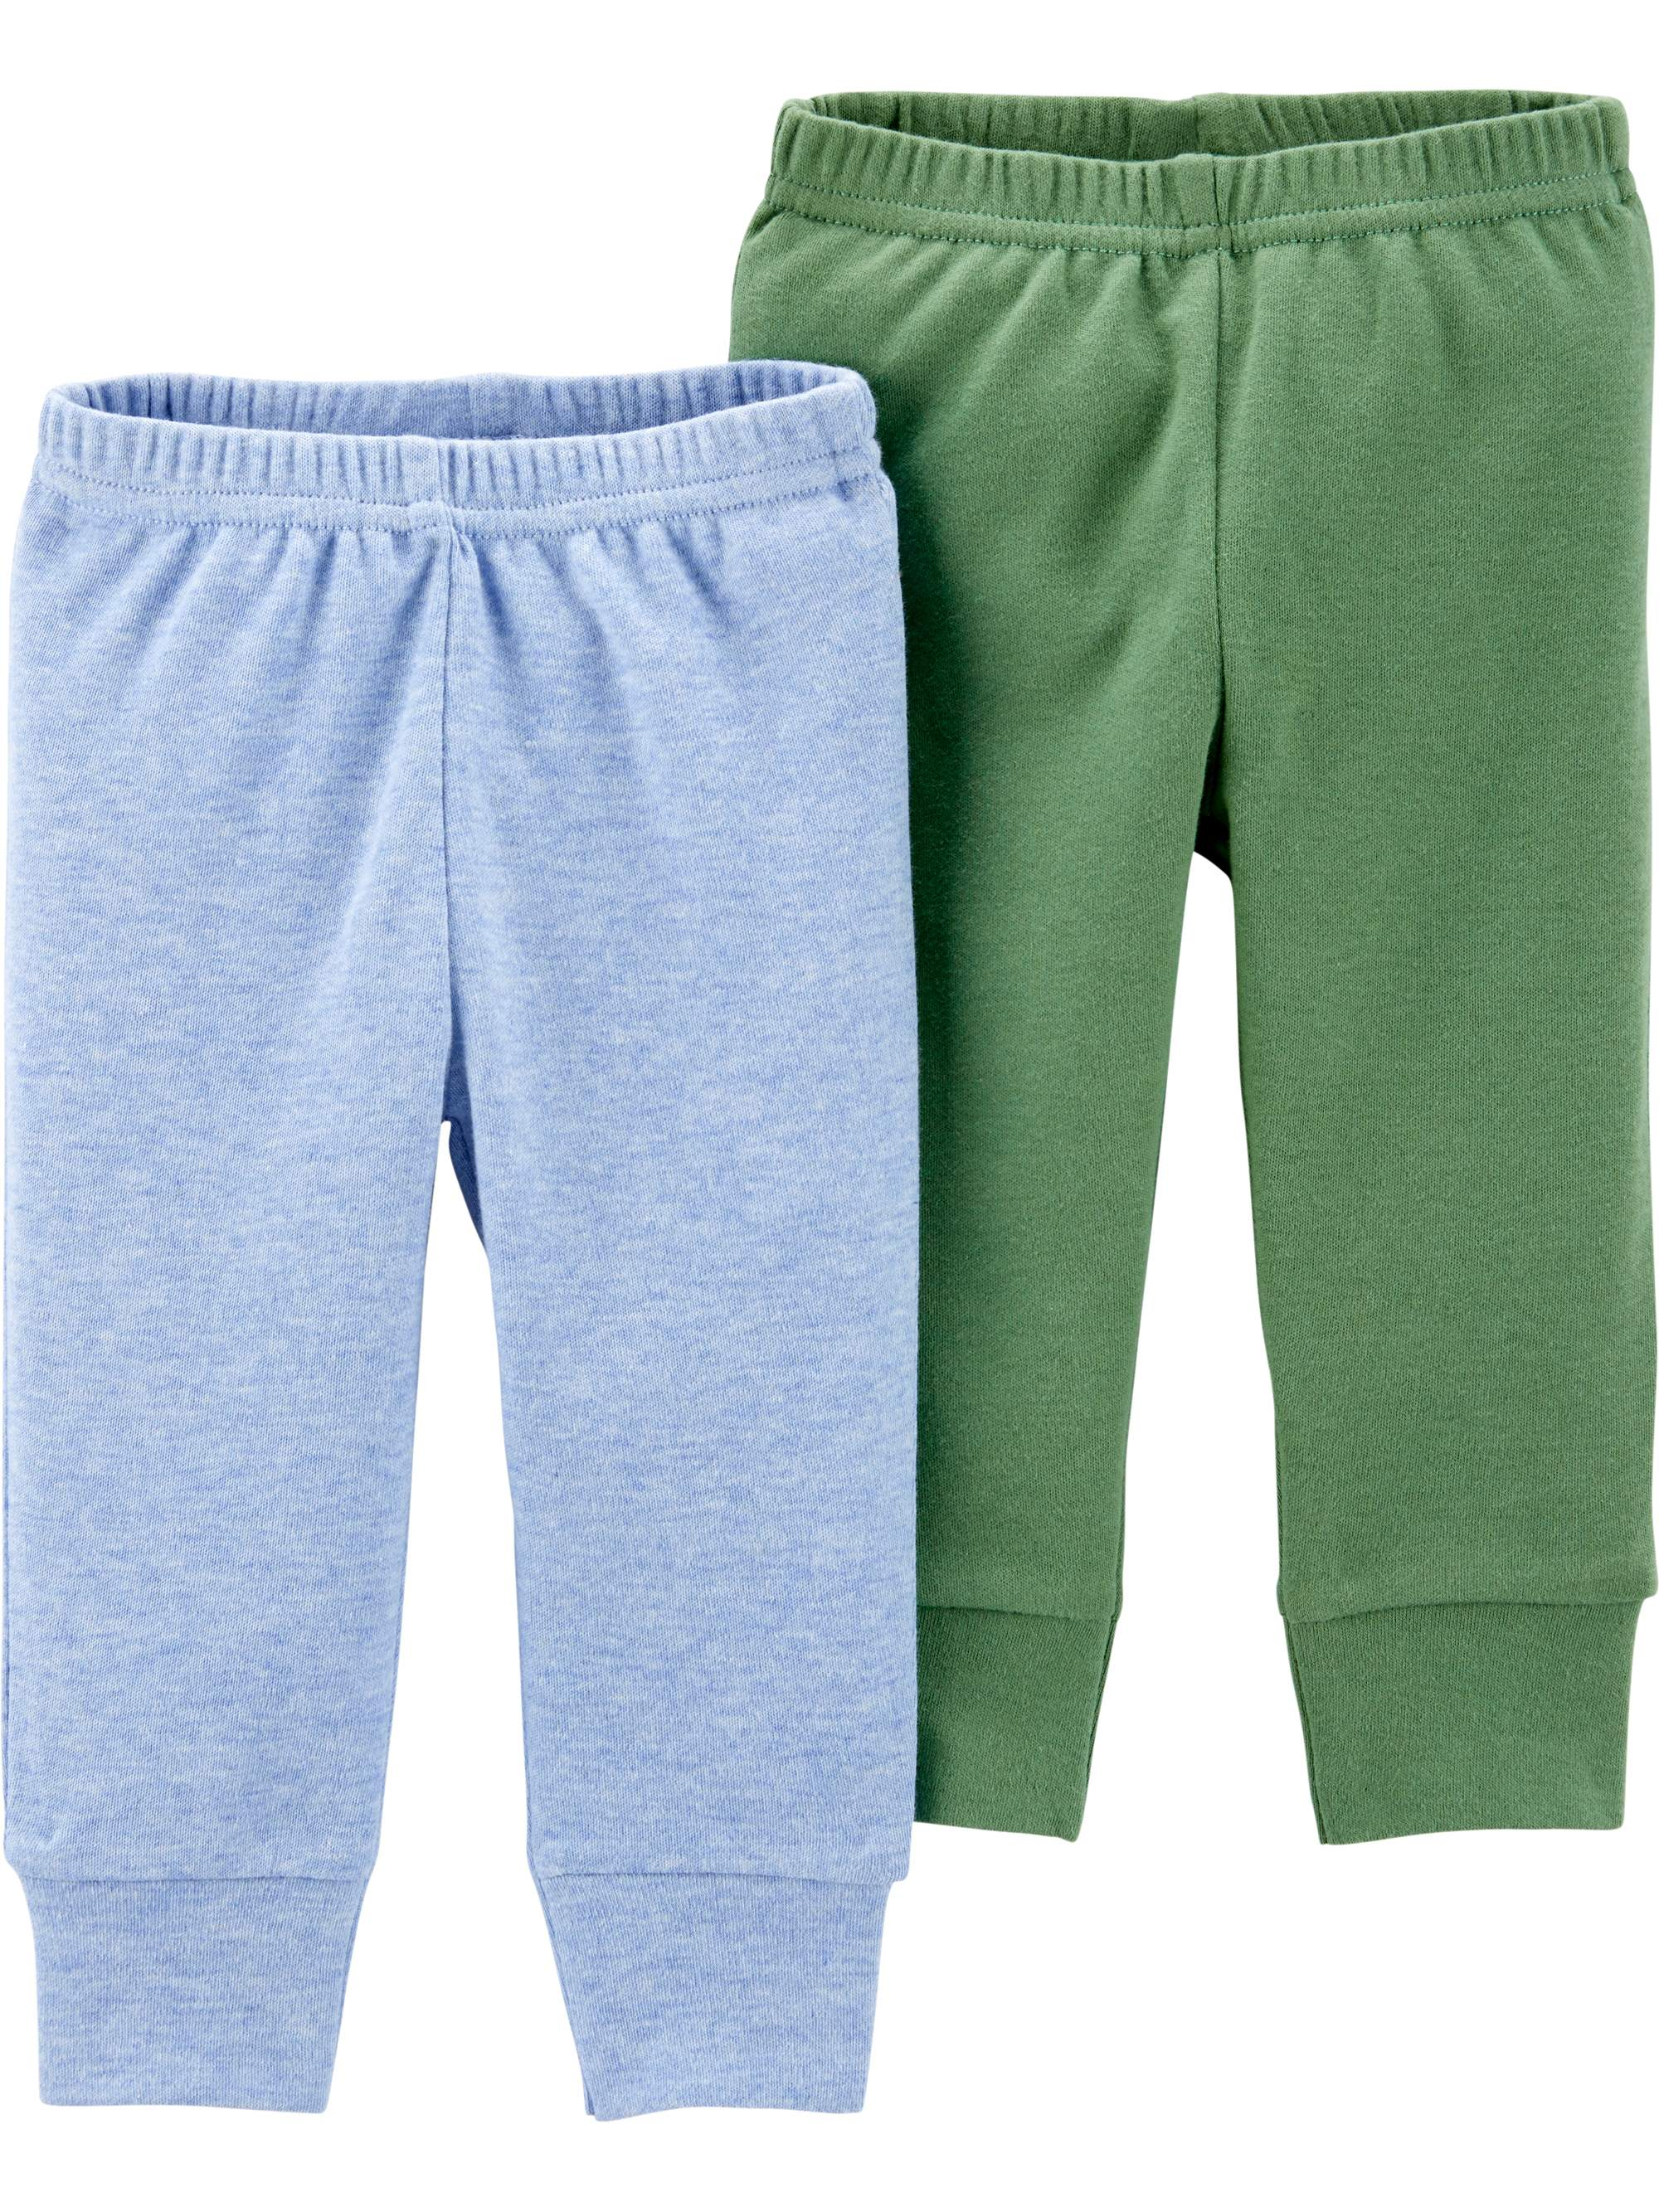 3 Months Carters Baby Boys or Girls Track Pants Navy with Green